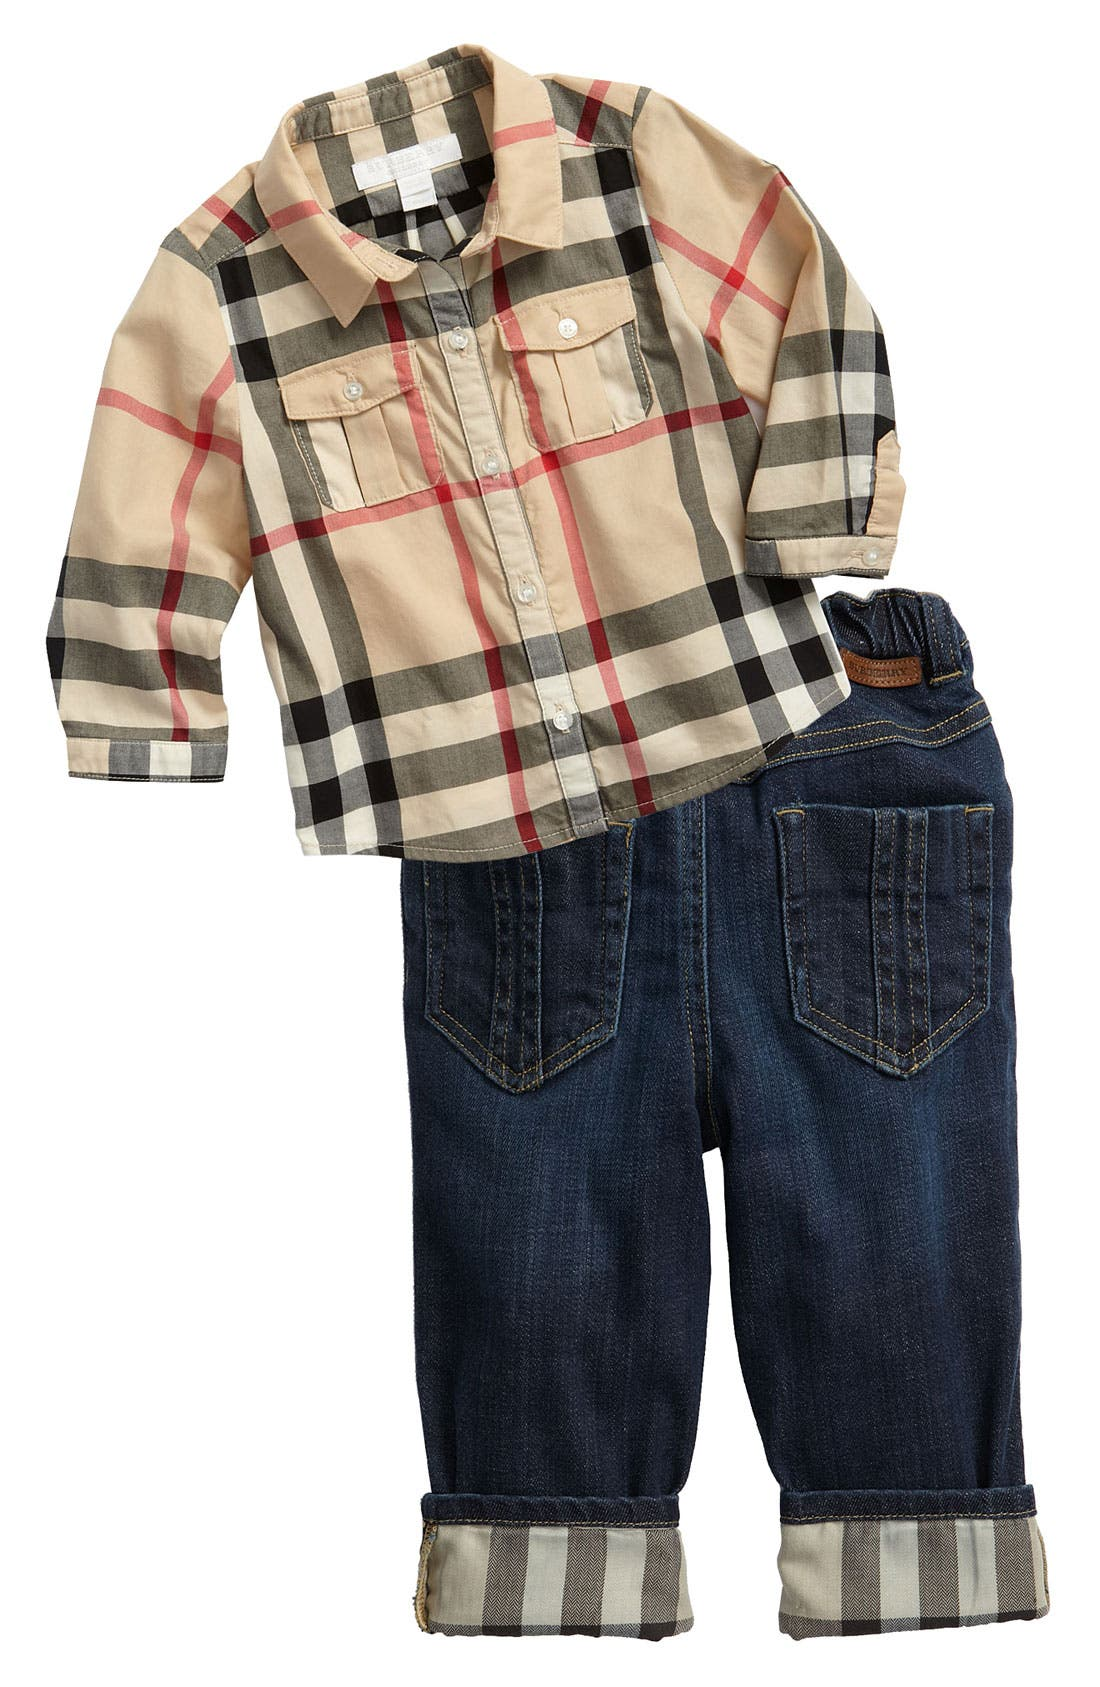 Main Image - Burberry Shirt & Jeans (Infant)